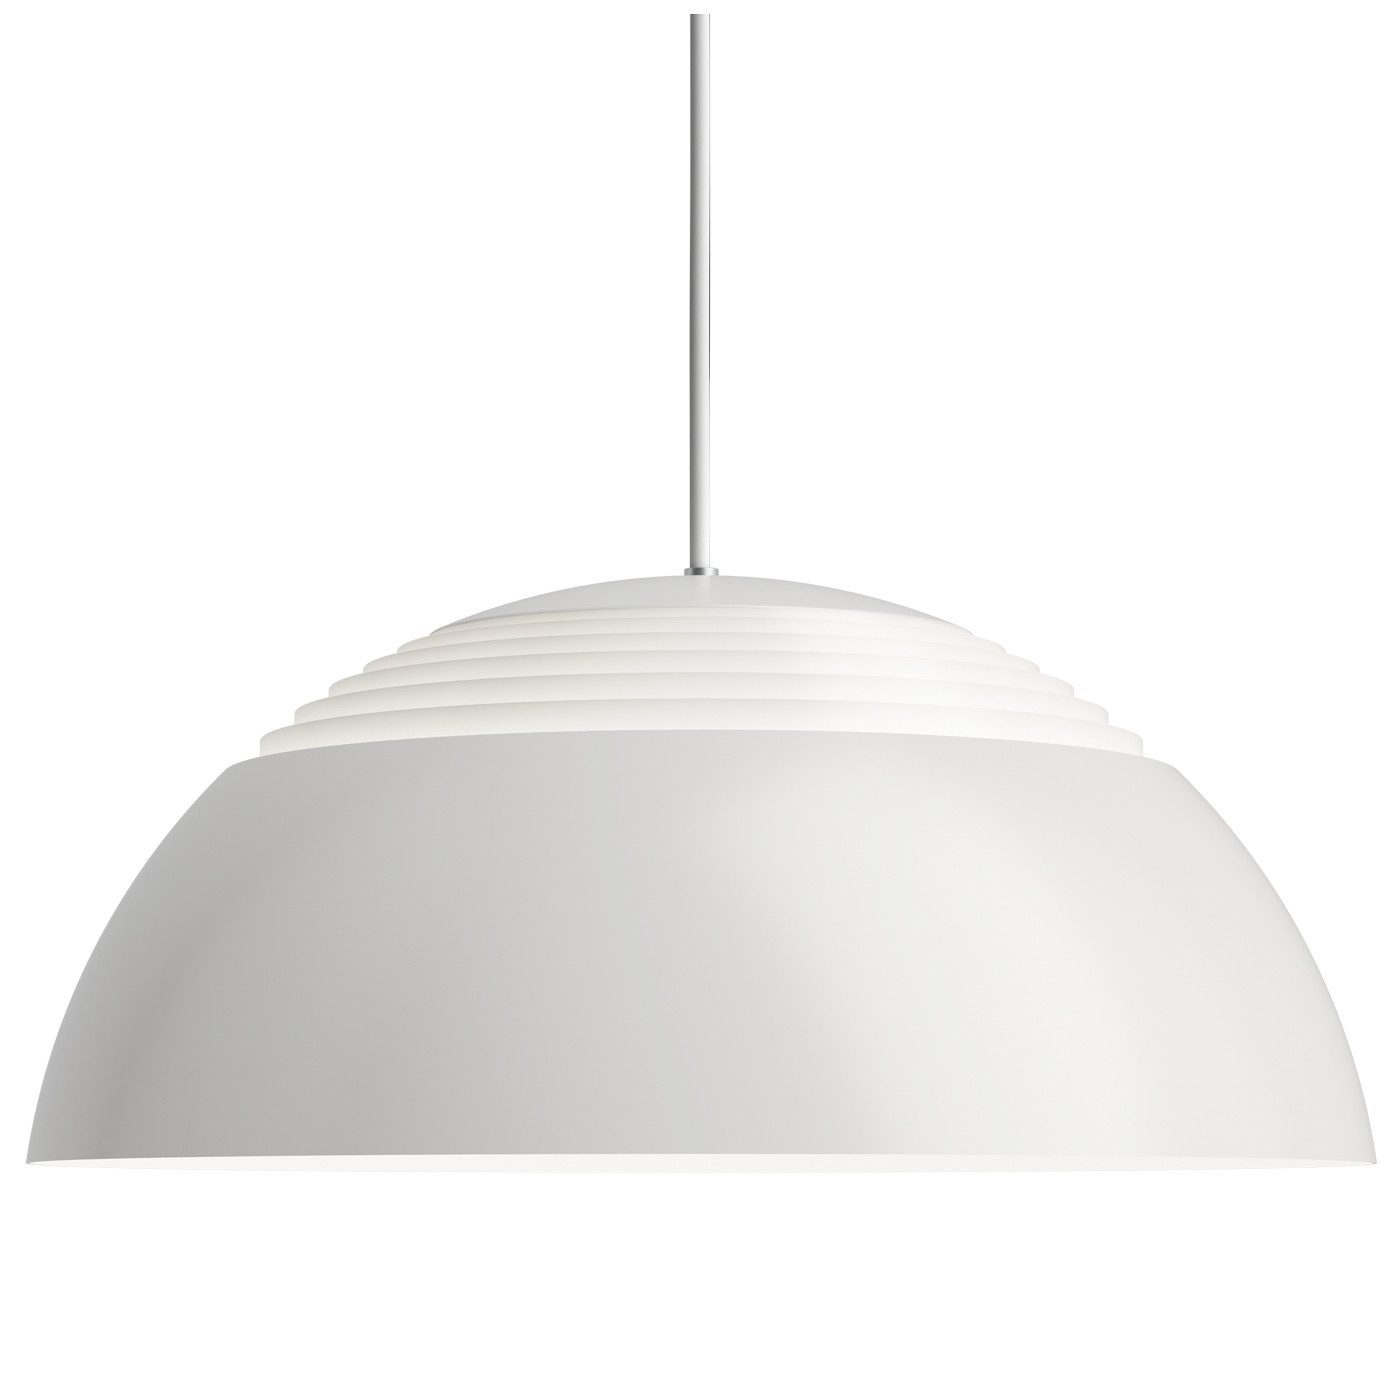 Louis Poulsen AJ Royal 500 LED Pendelleuchte